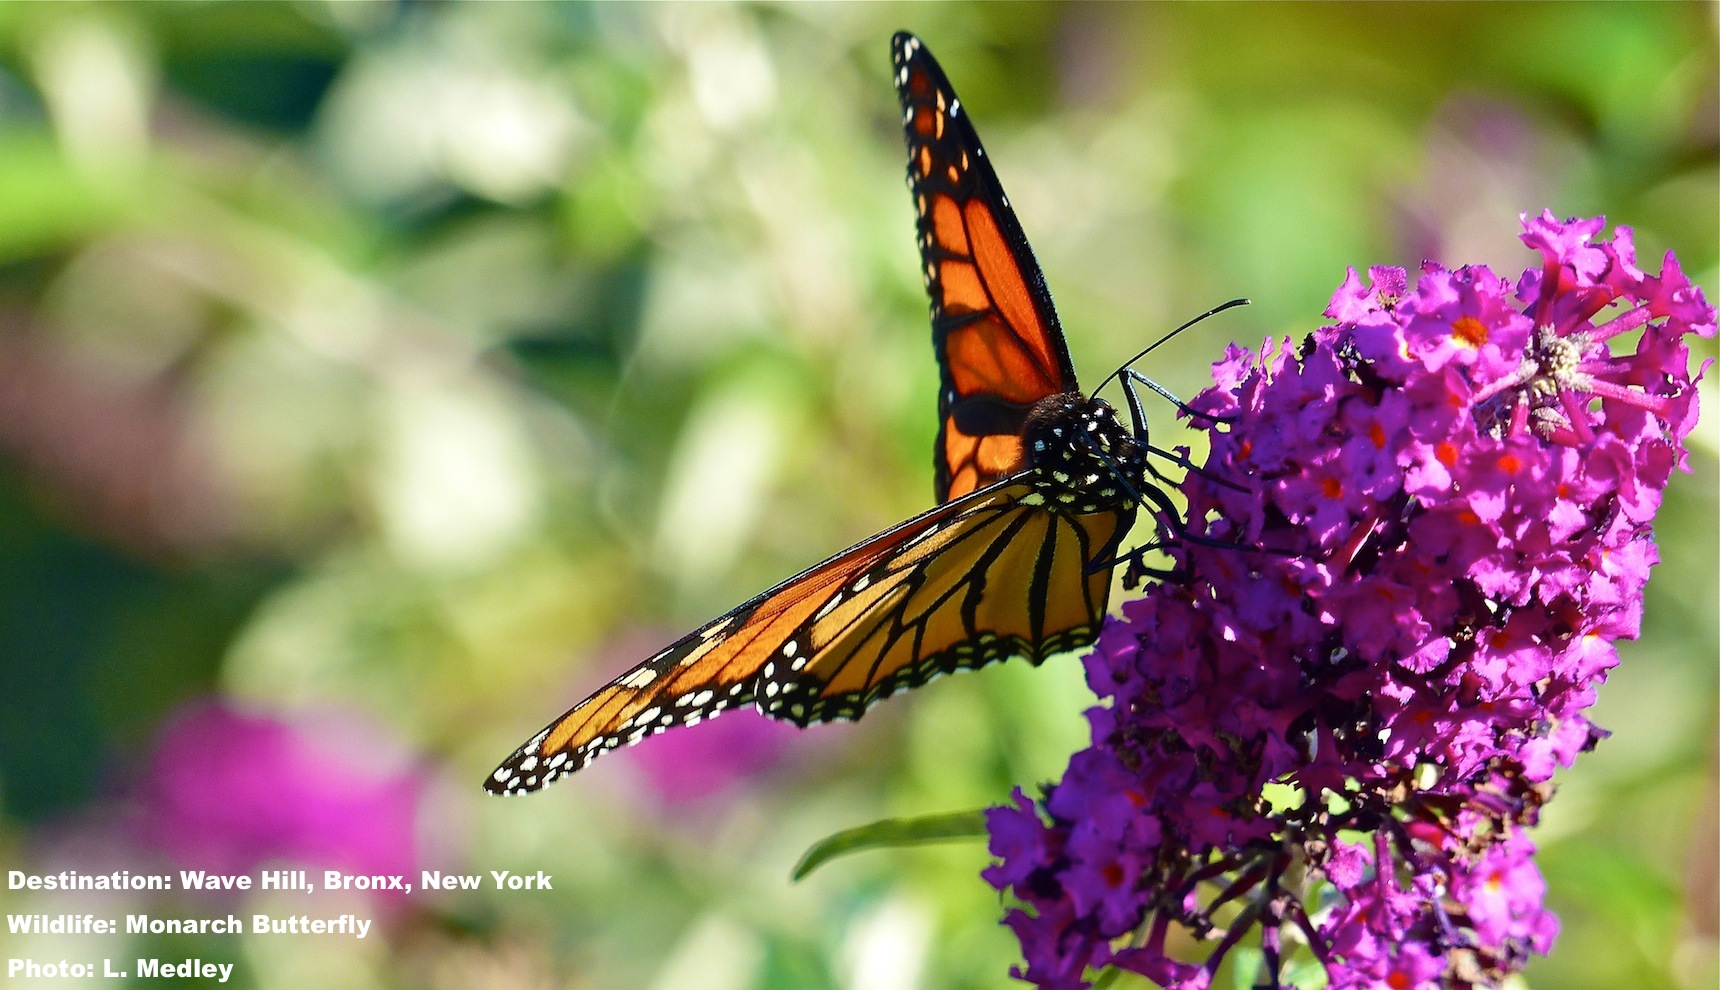 This was exactly the right place and today was exactly the right time. Monarch butterfly in the garden at Wave Hill, The Bronx, New York. Image: ©R. Kravette